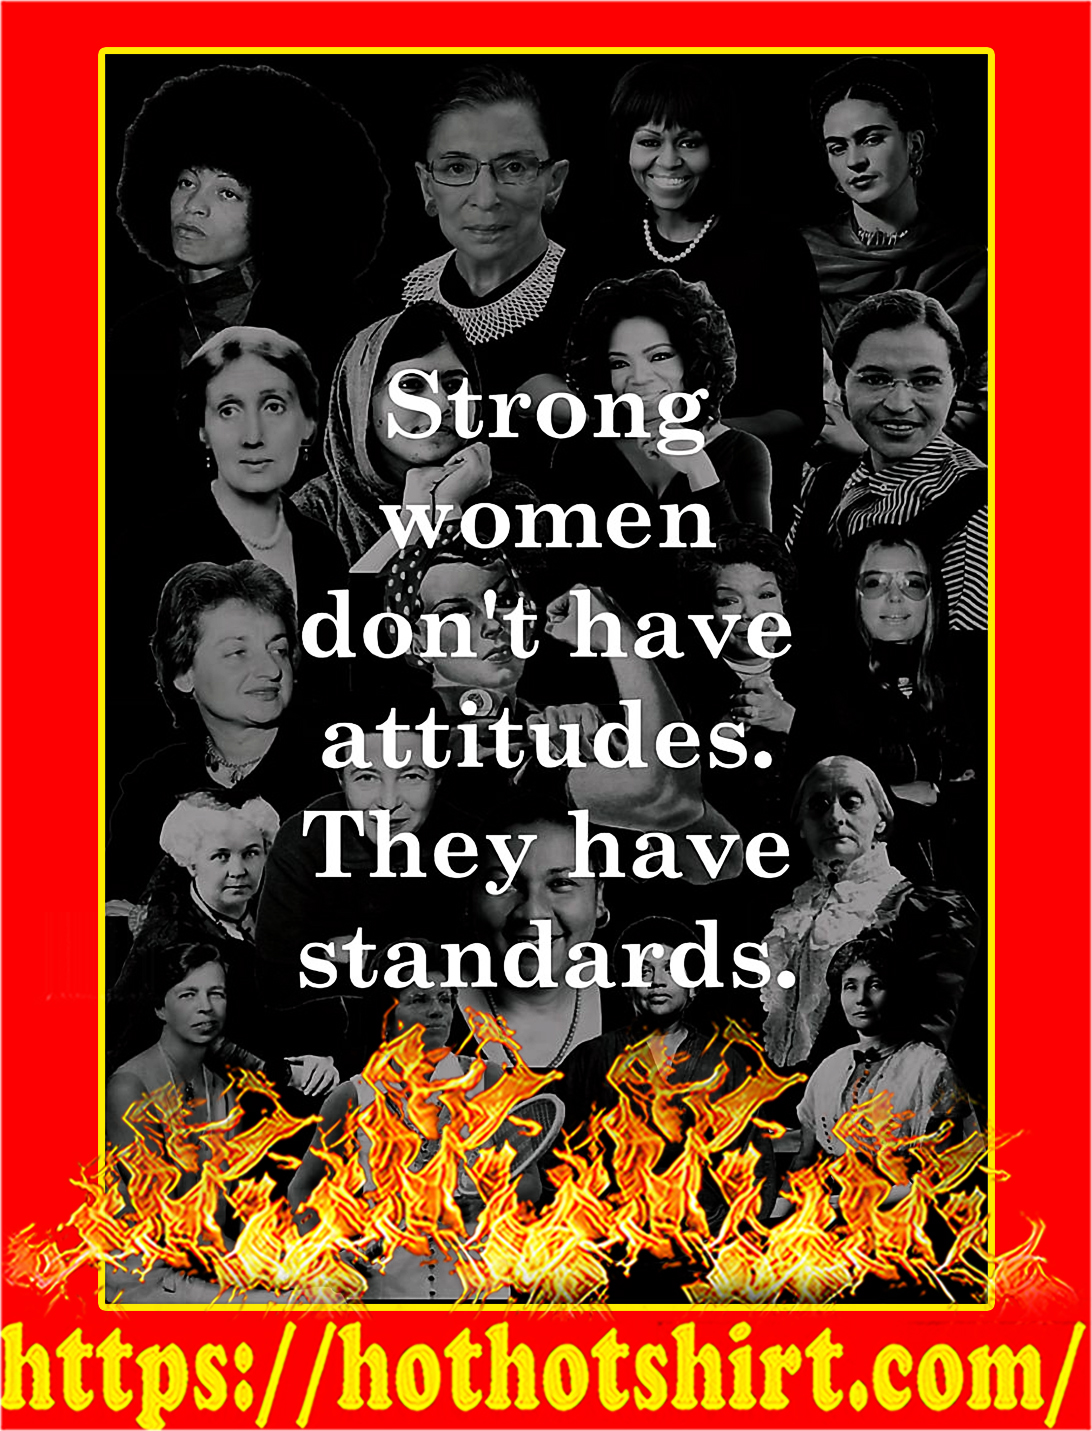 Strong women don't have attitude they have standards poster